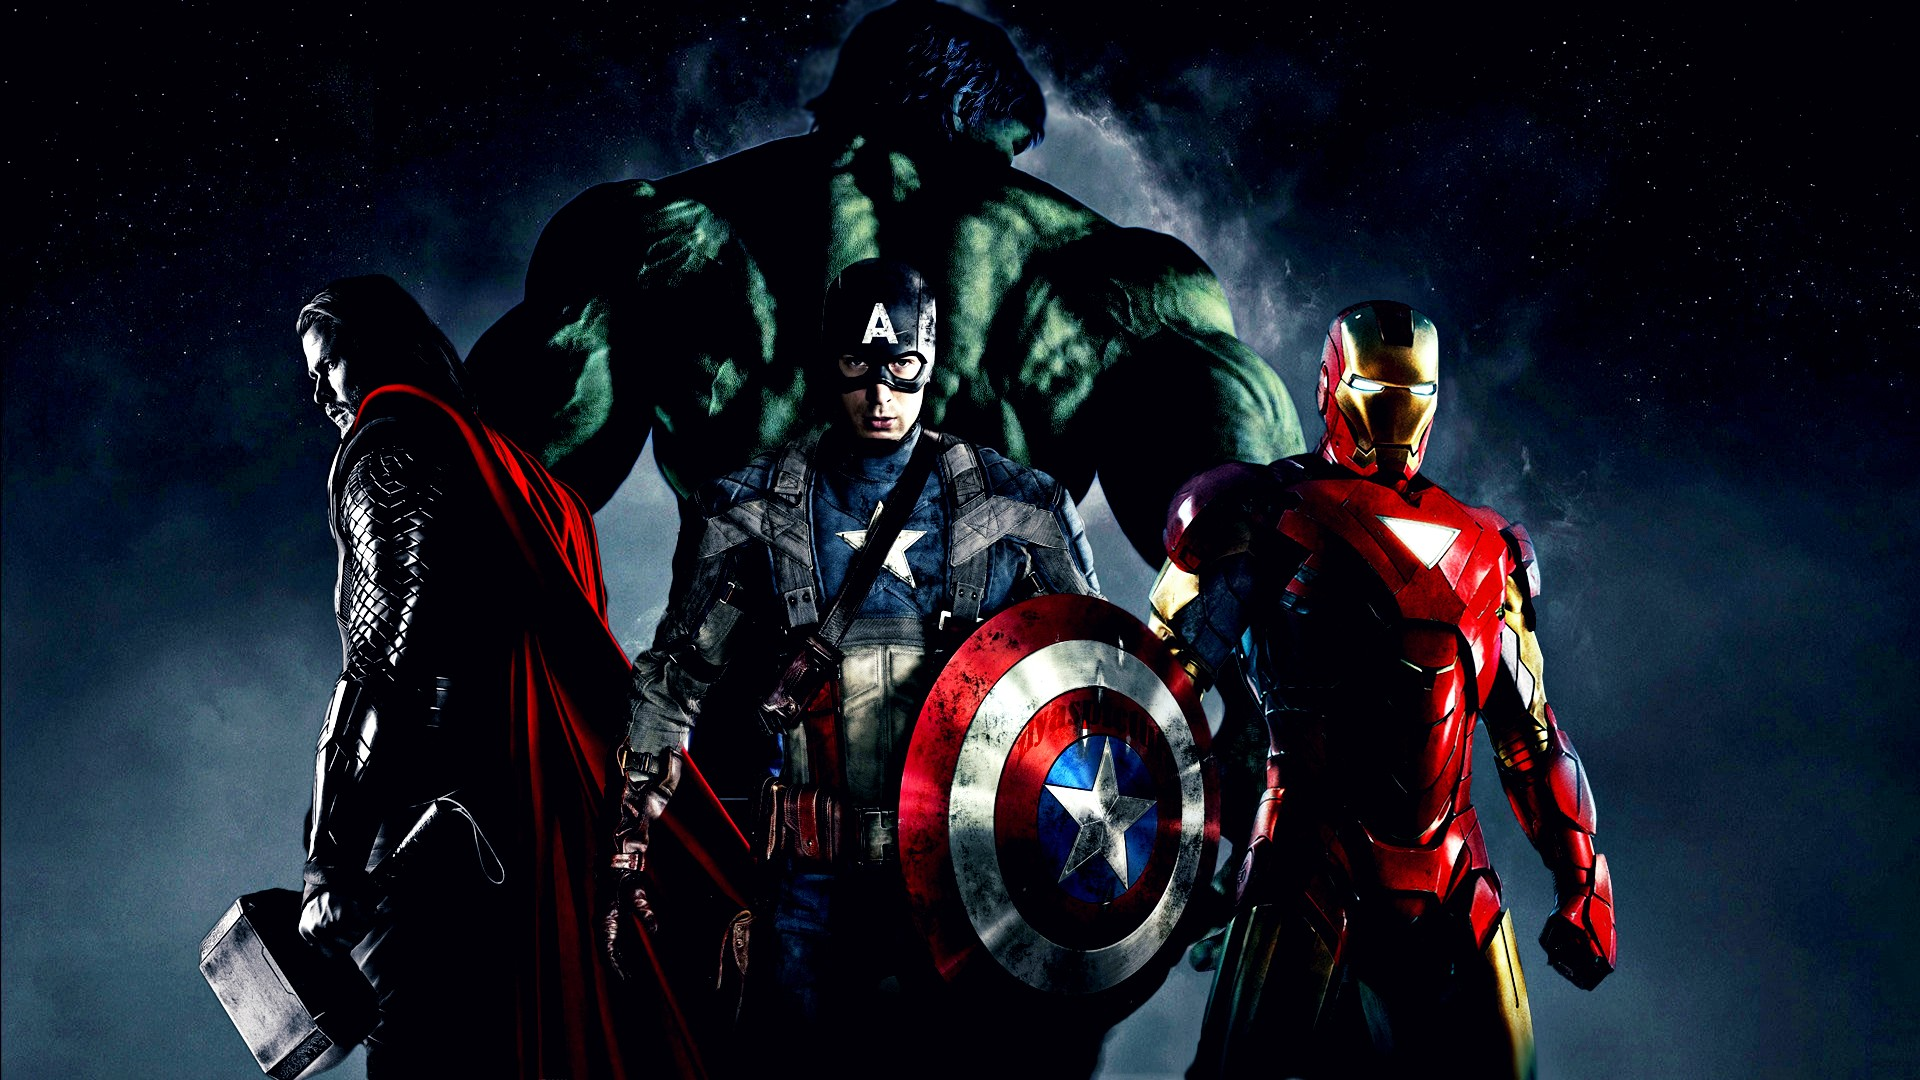 hulk (comic character) iron man thor captain america chris evans chris